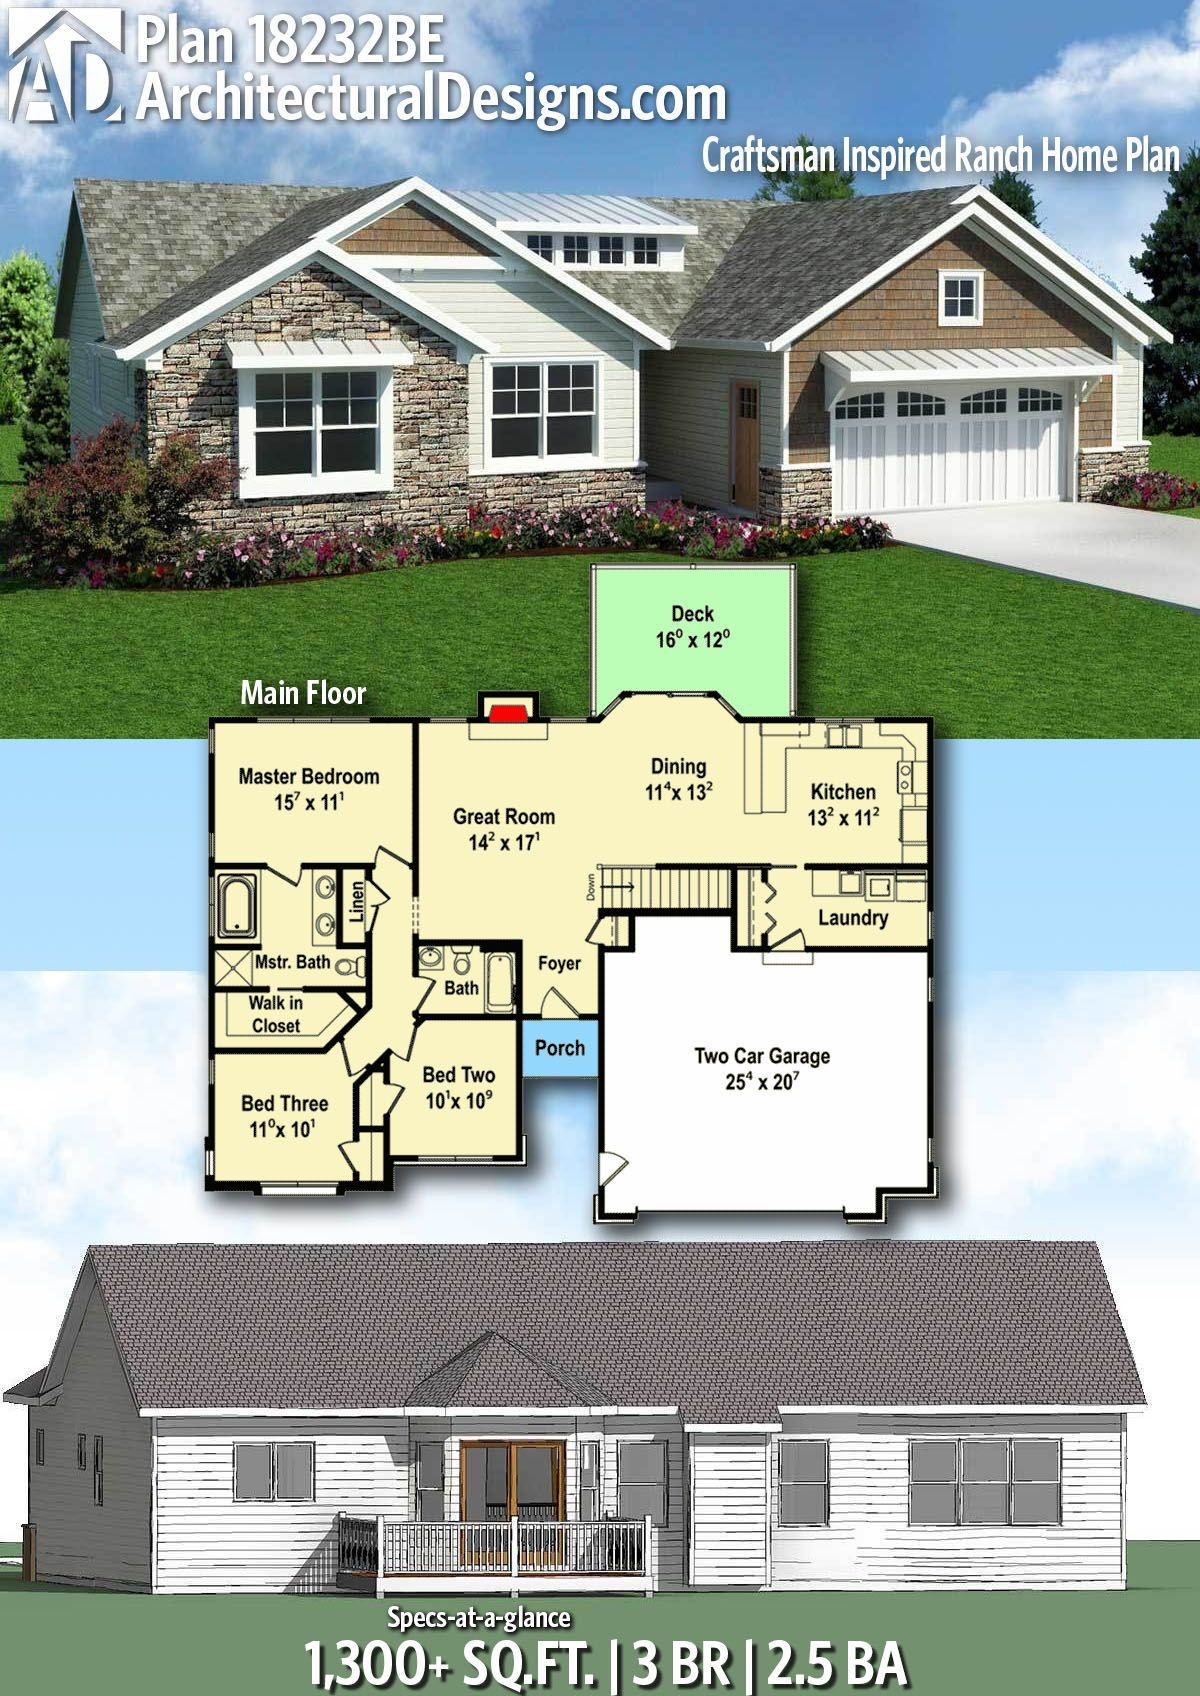 Plan 18232be Craftsman Inspired Ranch Home Plan House Plans